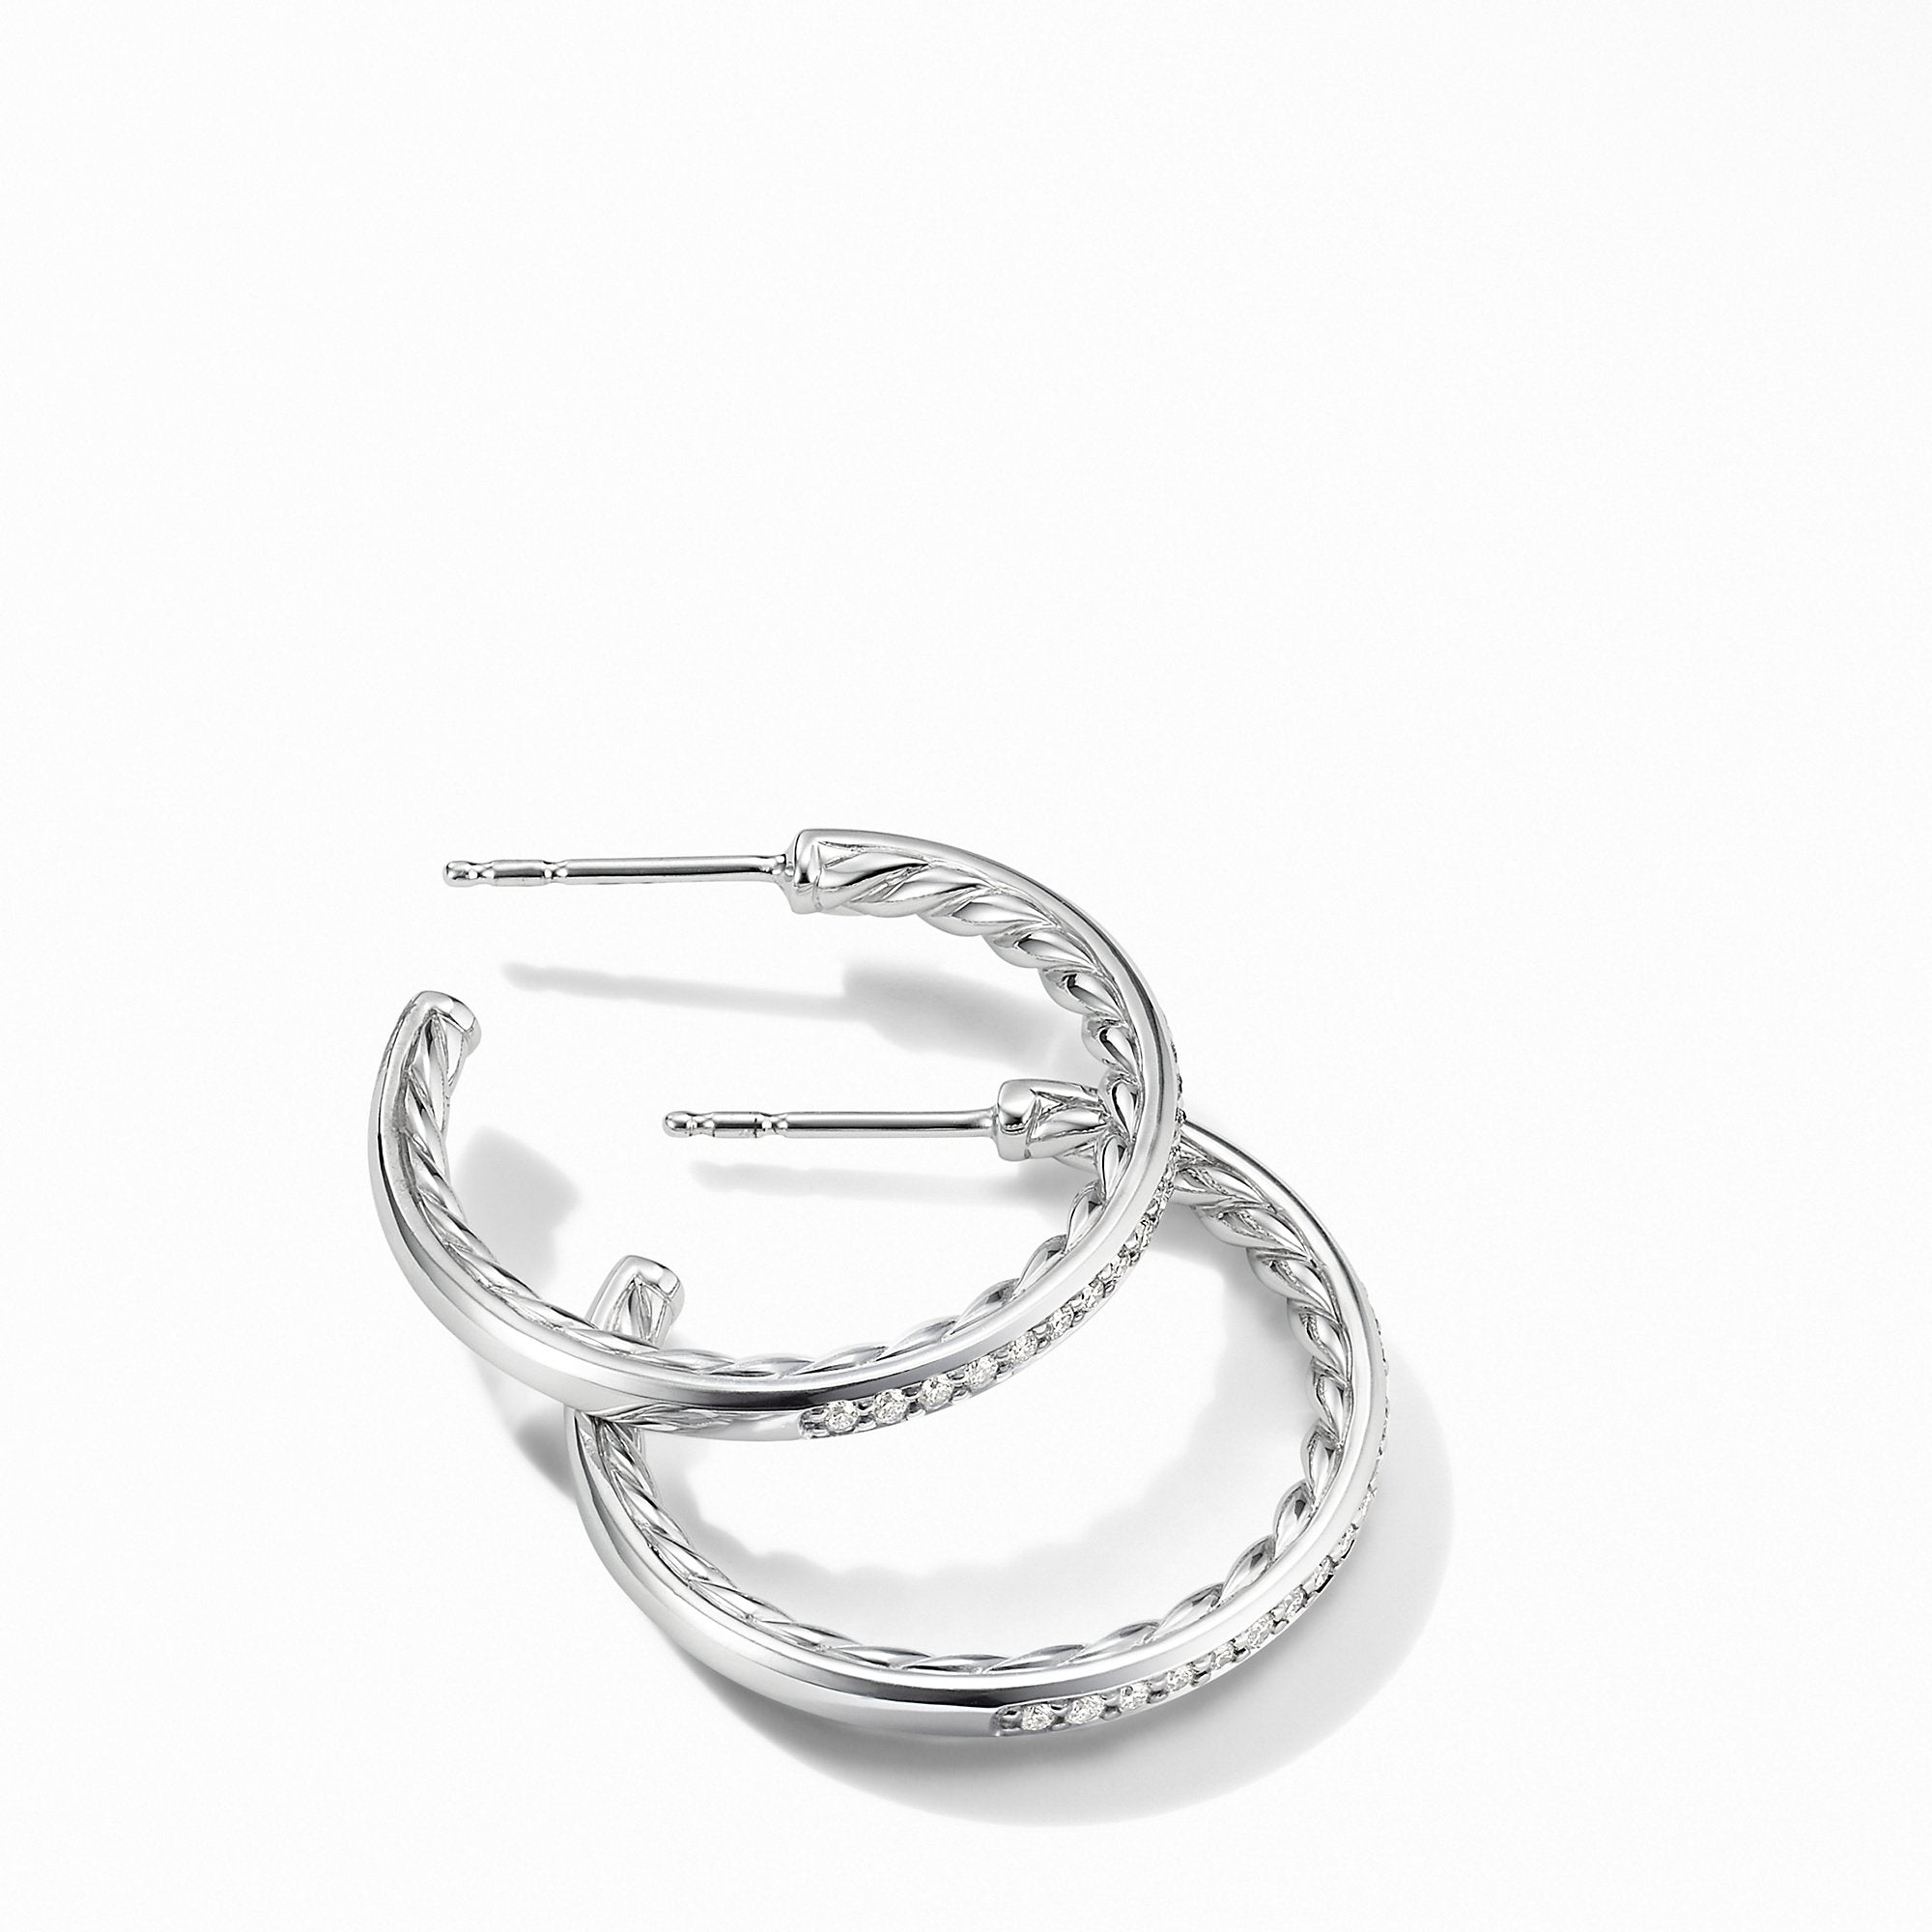 Small Hoop Earrings with Pavé Diamonds